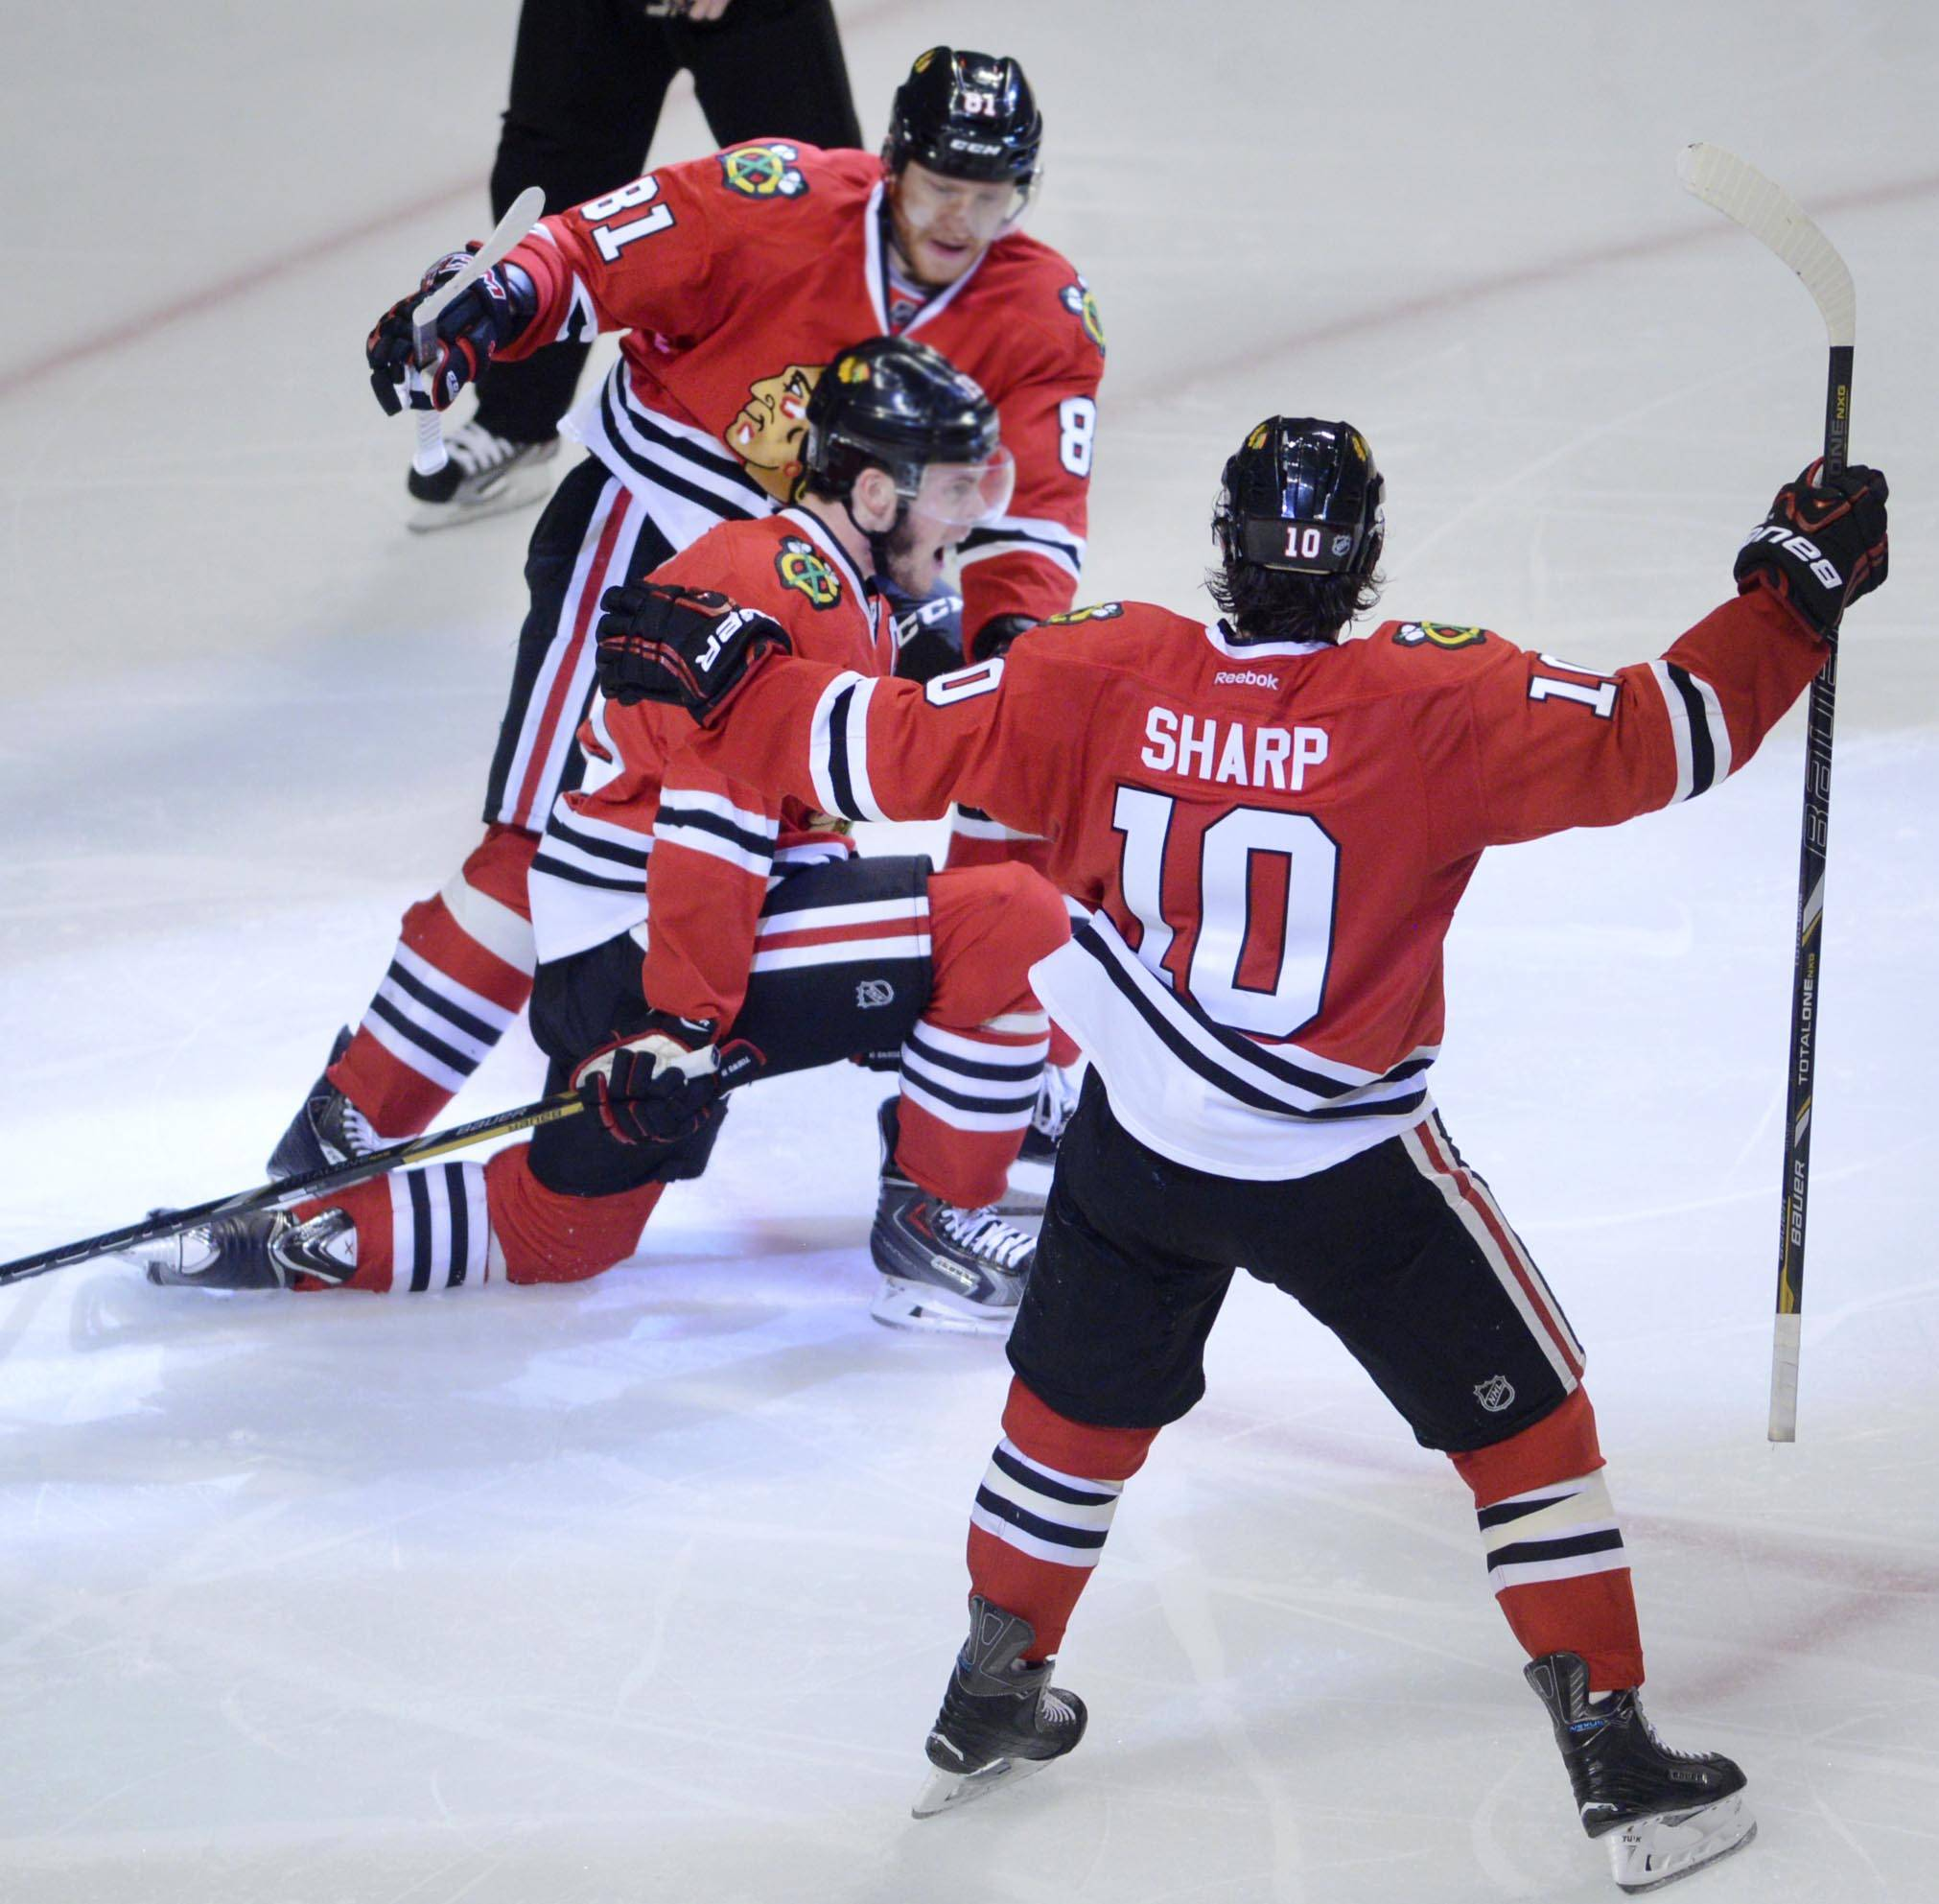 Chicago Blackhawks center Jonathan Toews celebrates his game-winning goal of the game in the third period with teammates Marian Hossa and Patrick Sharp.